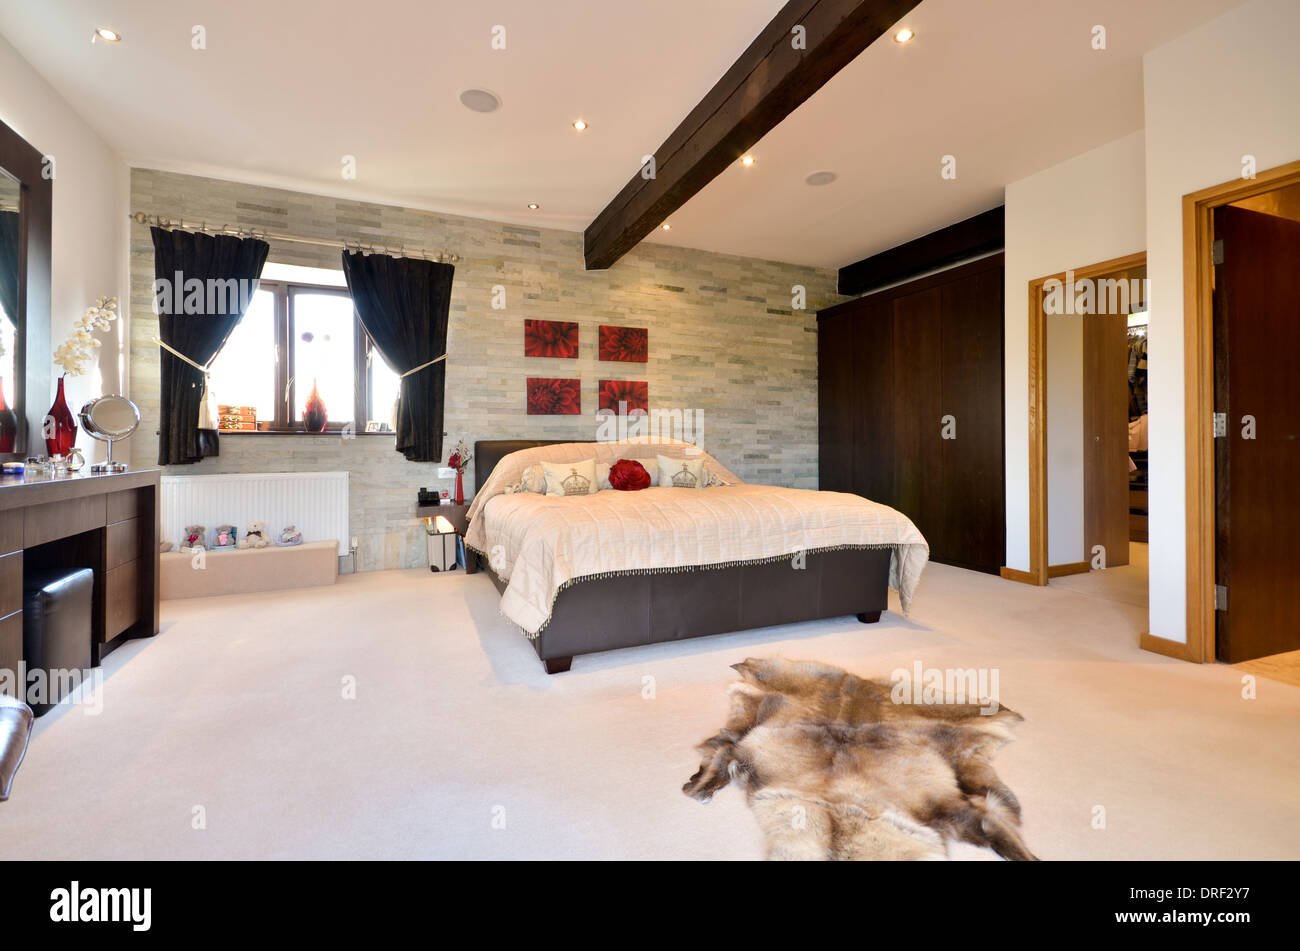 Stylish master bedroom with ensuite and dressing room stock photo royalty free image 66099803 Master bedroom with ensuite